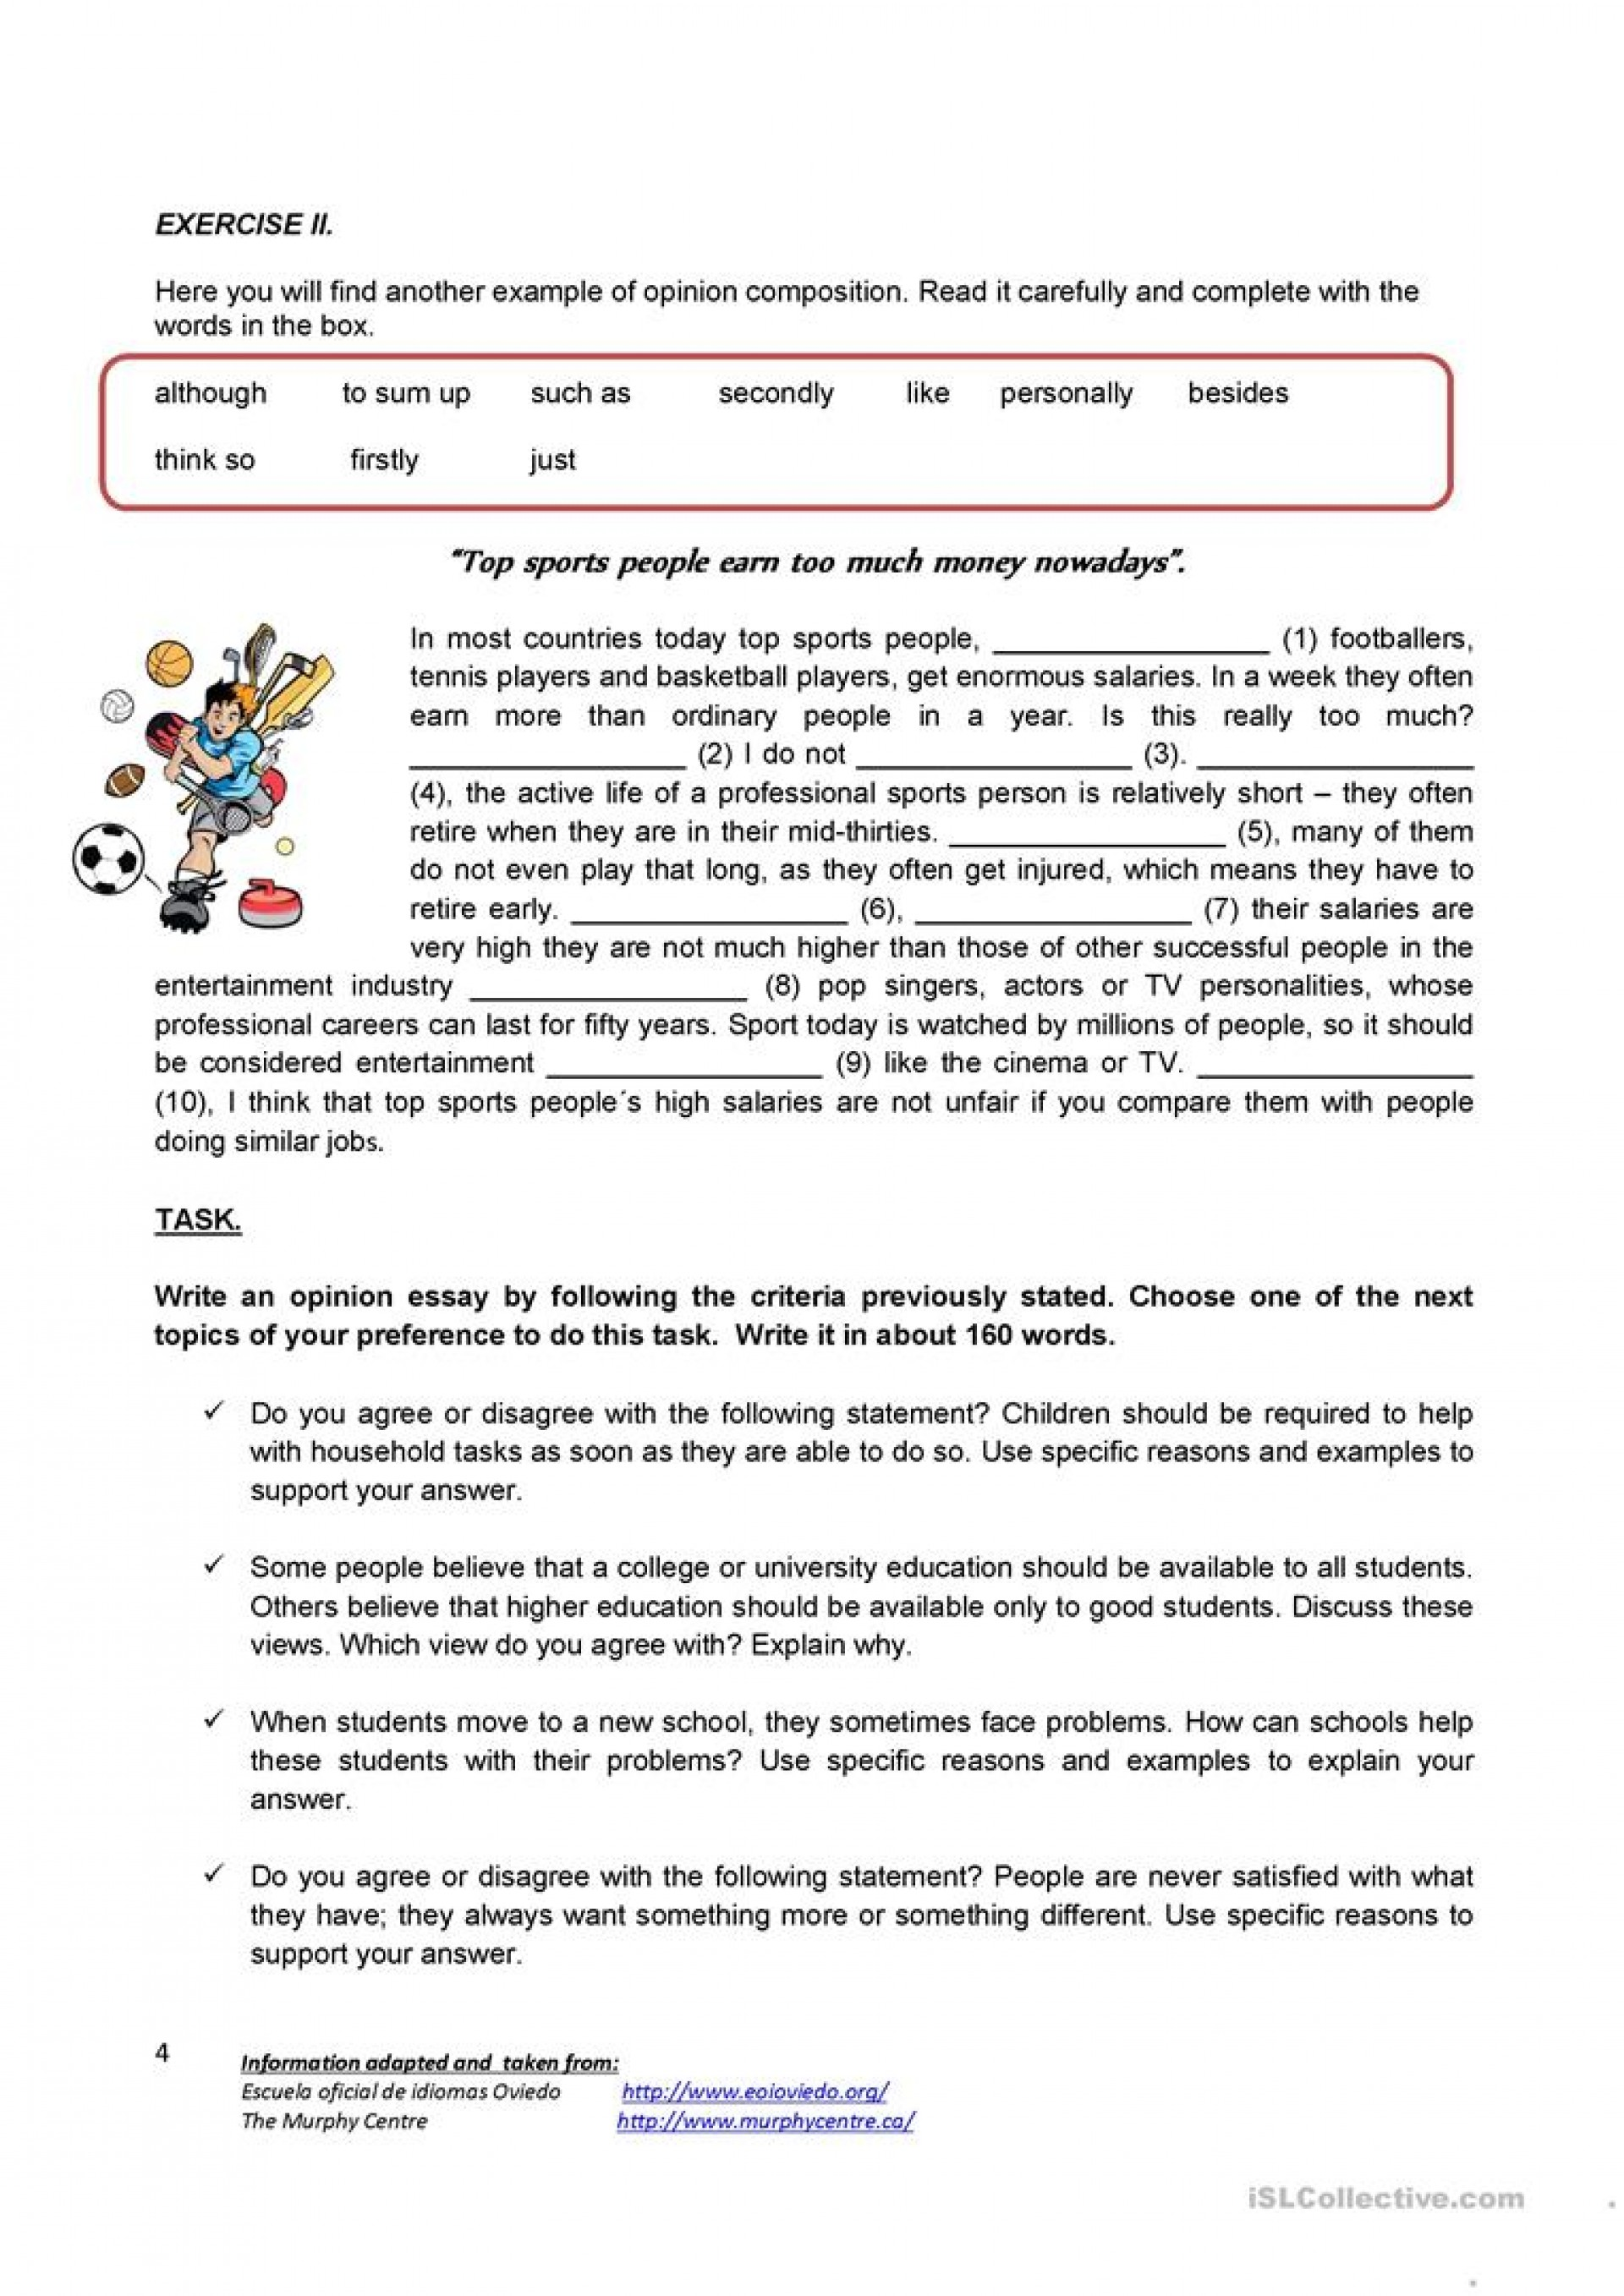 004 Essay Example Writing An Opinion Creative Tasks 80444 4 How To Unbelievable Write Conclusion On A Book Video 1920